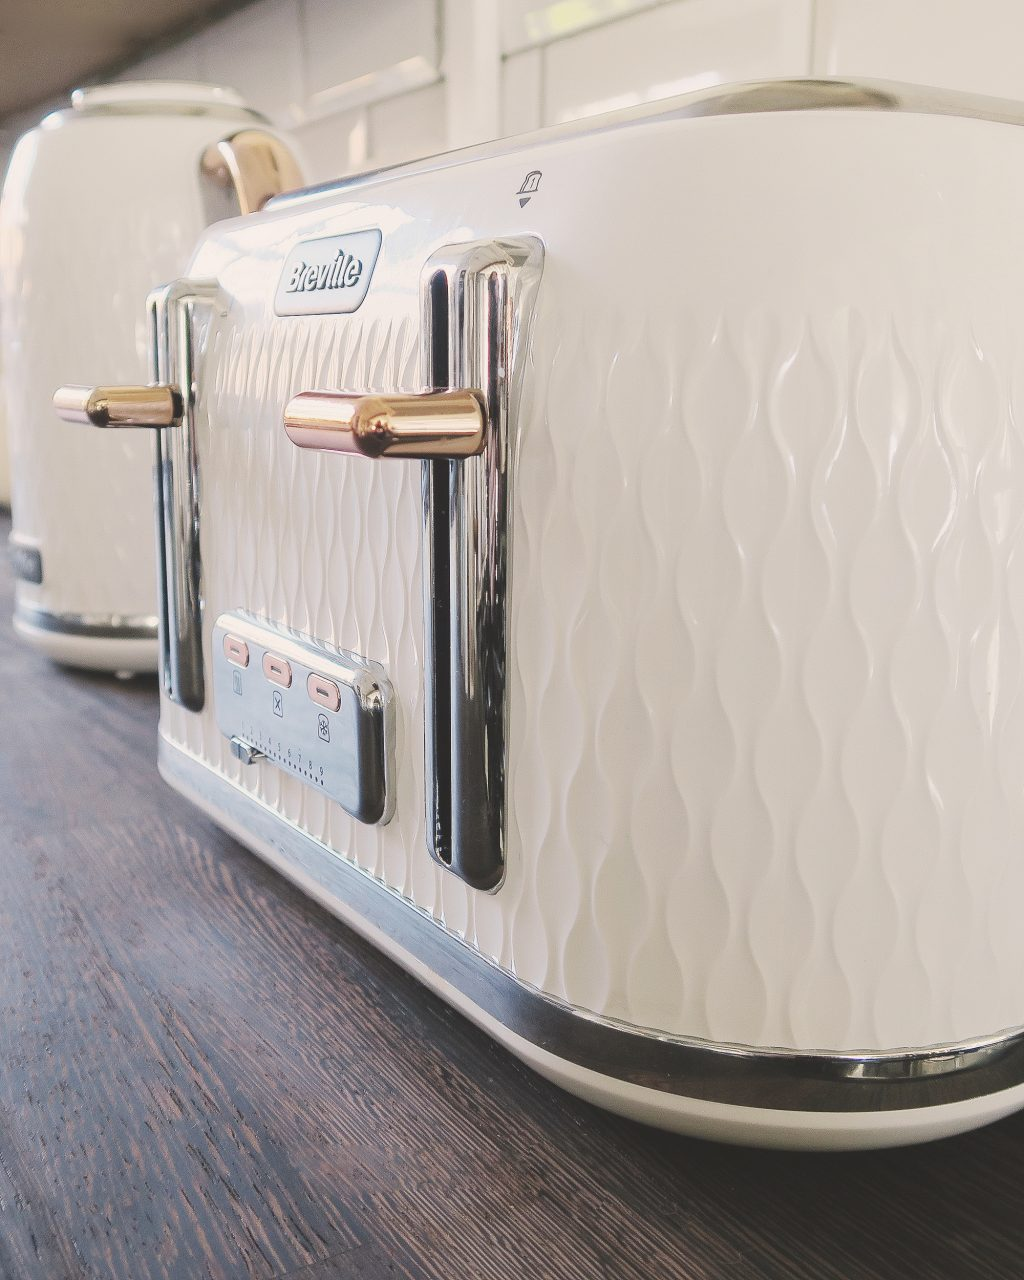 Breville Curve Toaster and Kettle